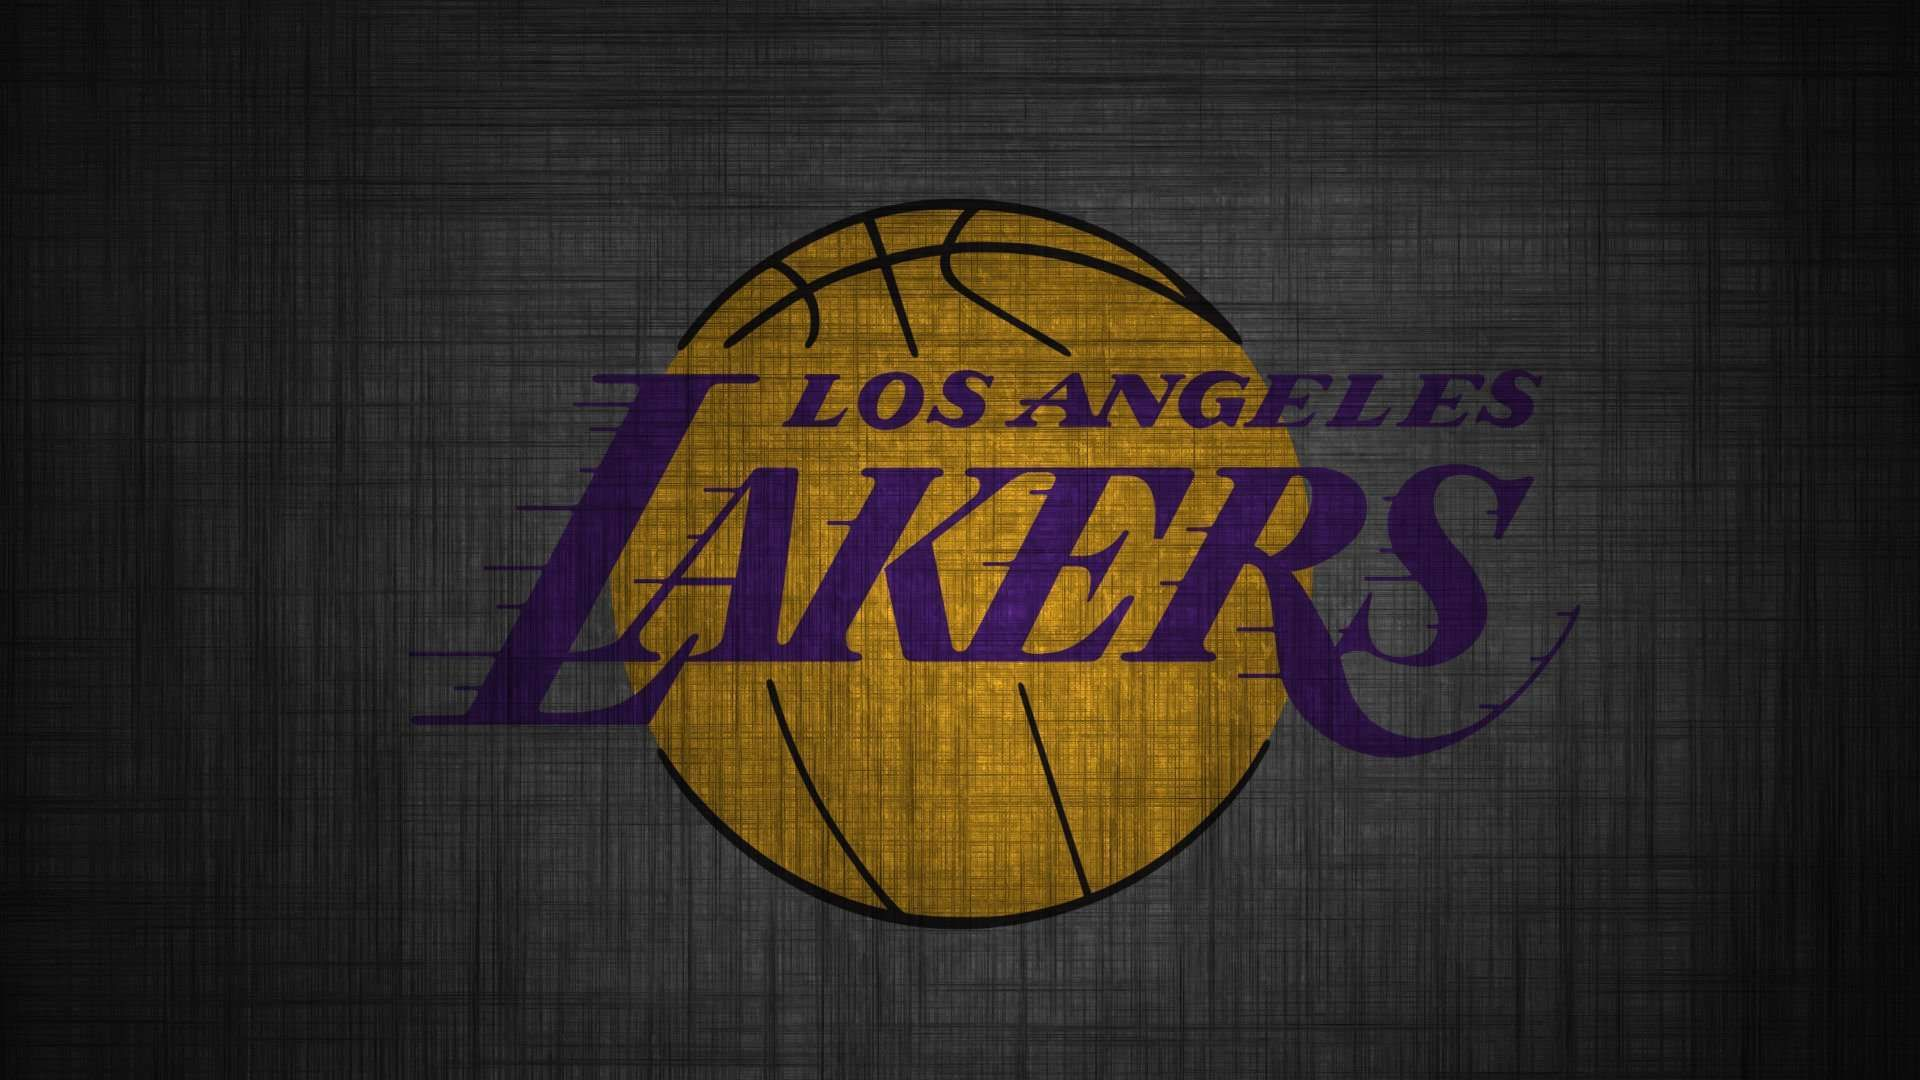 Free Lakers Wallpapers Wallpaper 1920 1080 Lakers Wallpaper 43 Wallpapers Adorable Wallpapers Lakers Wallpaper Nba Wallpapers Lakers